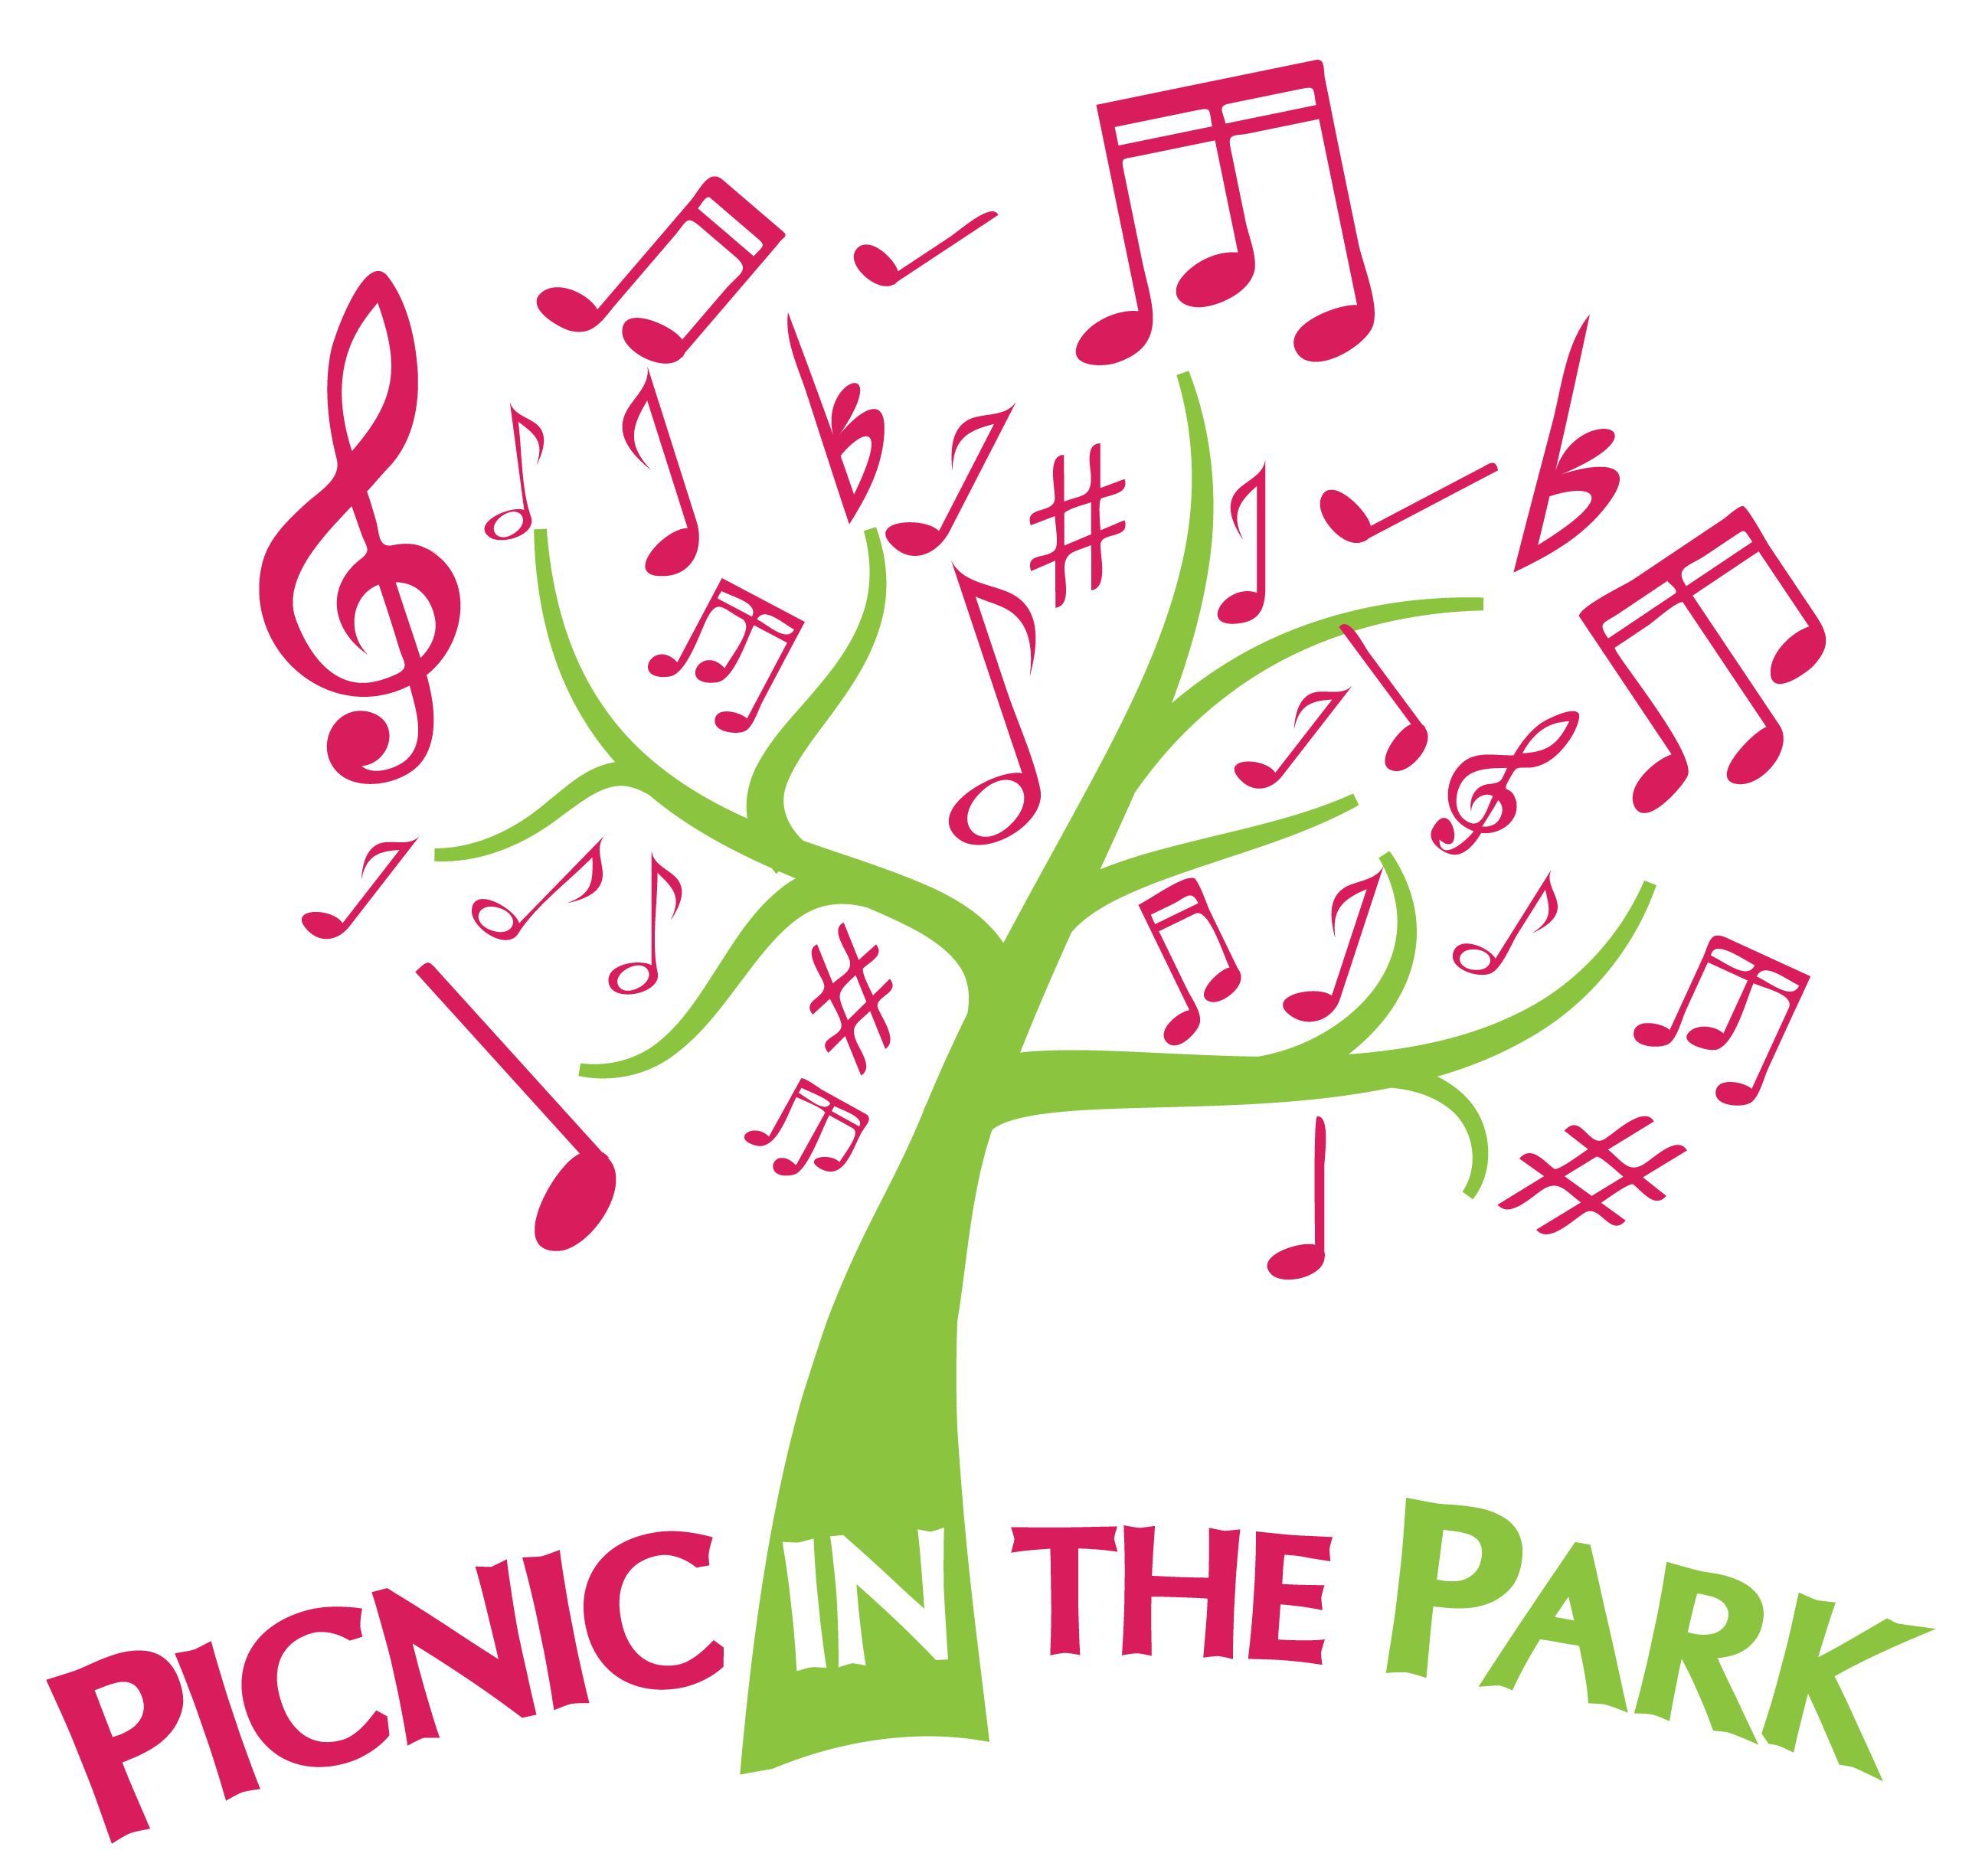 Picnic in the Park graphic-01.png